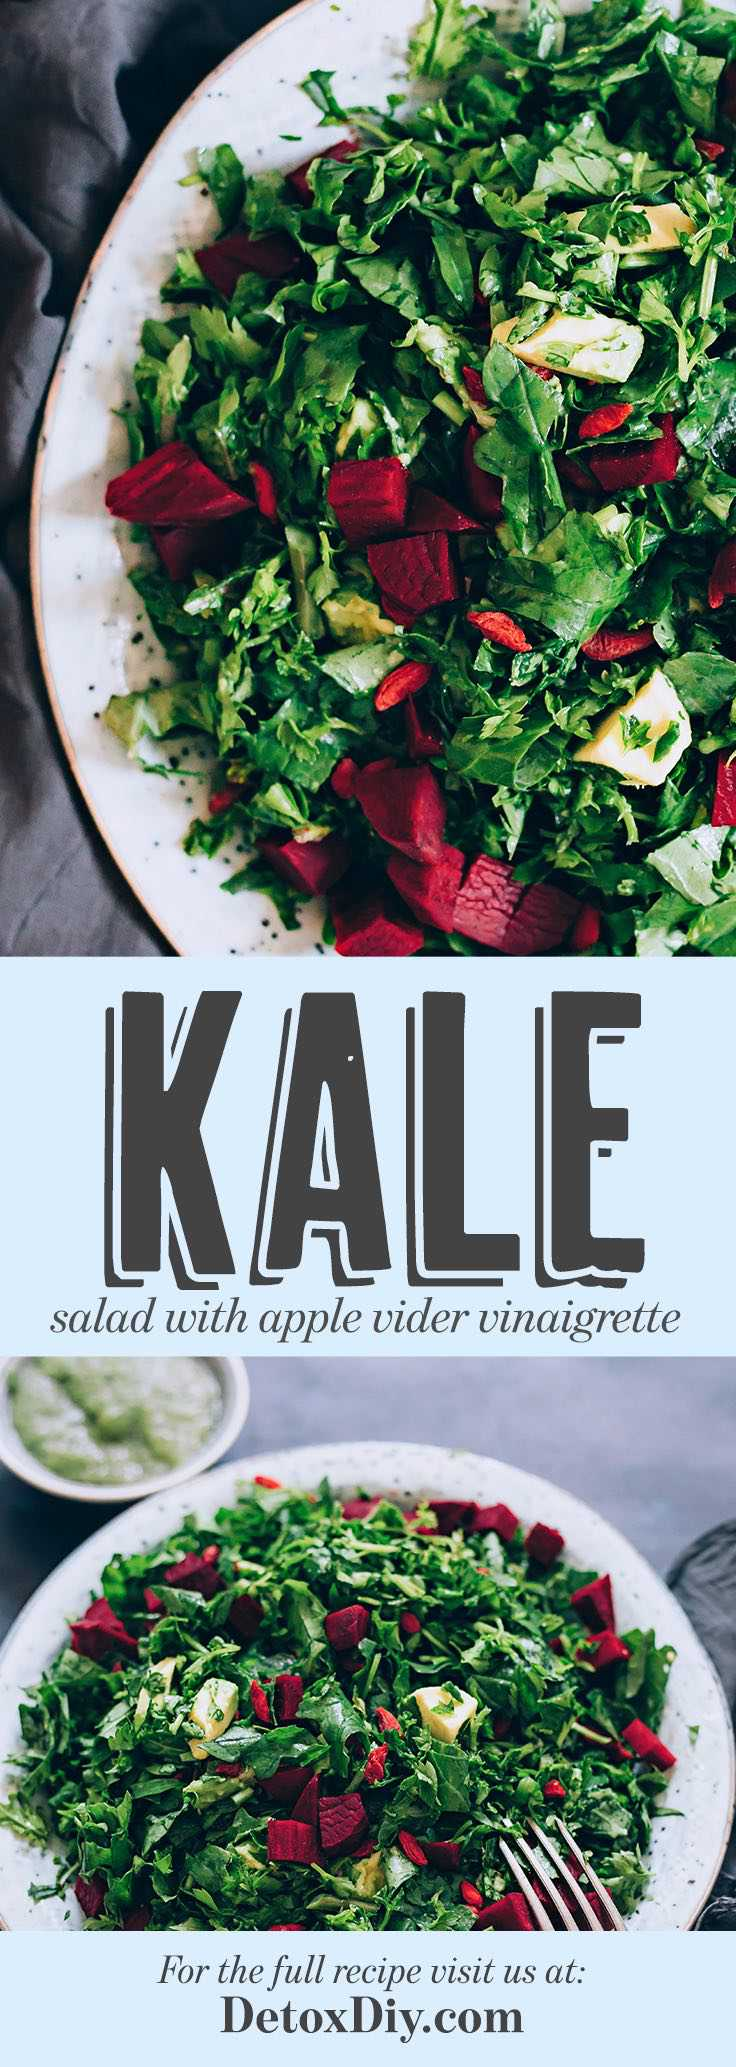 Beet, Avocado and Kale Salad with Apple Cider Vinaigrette